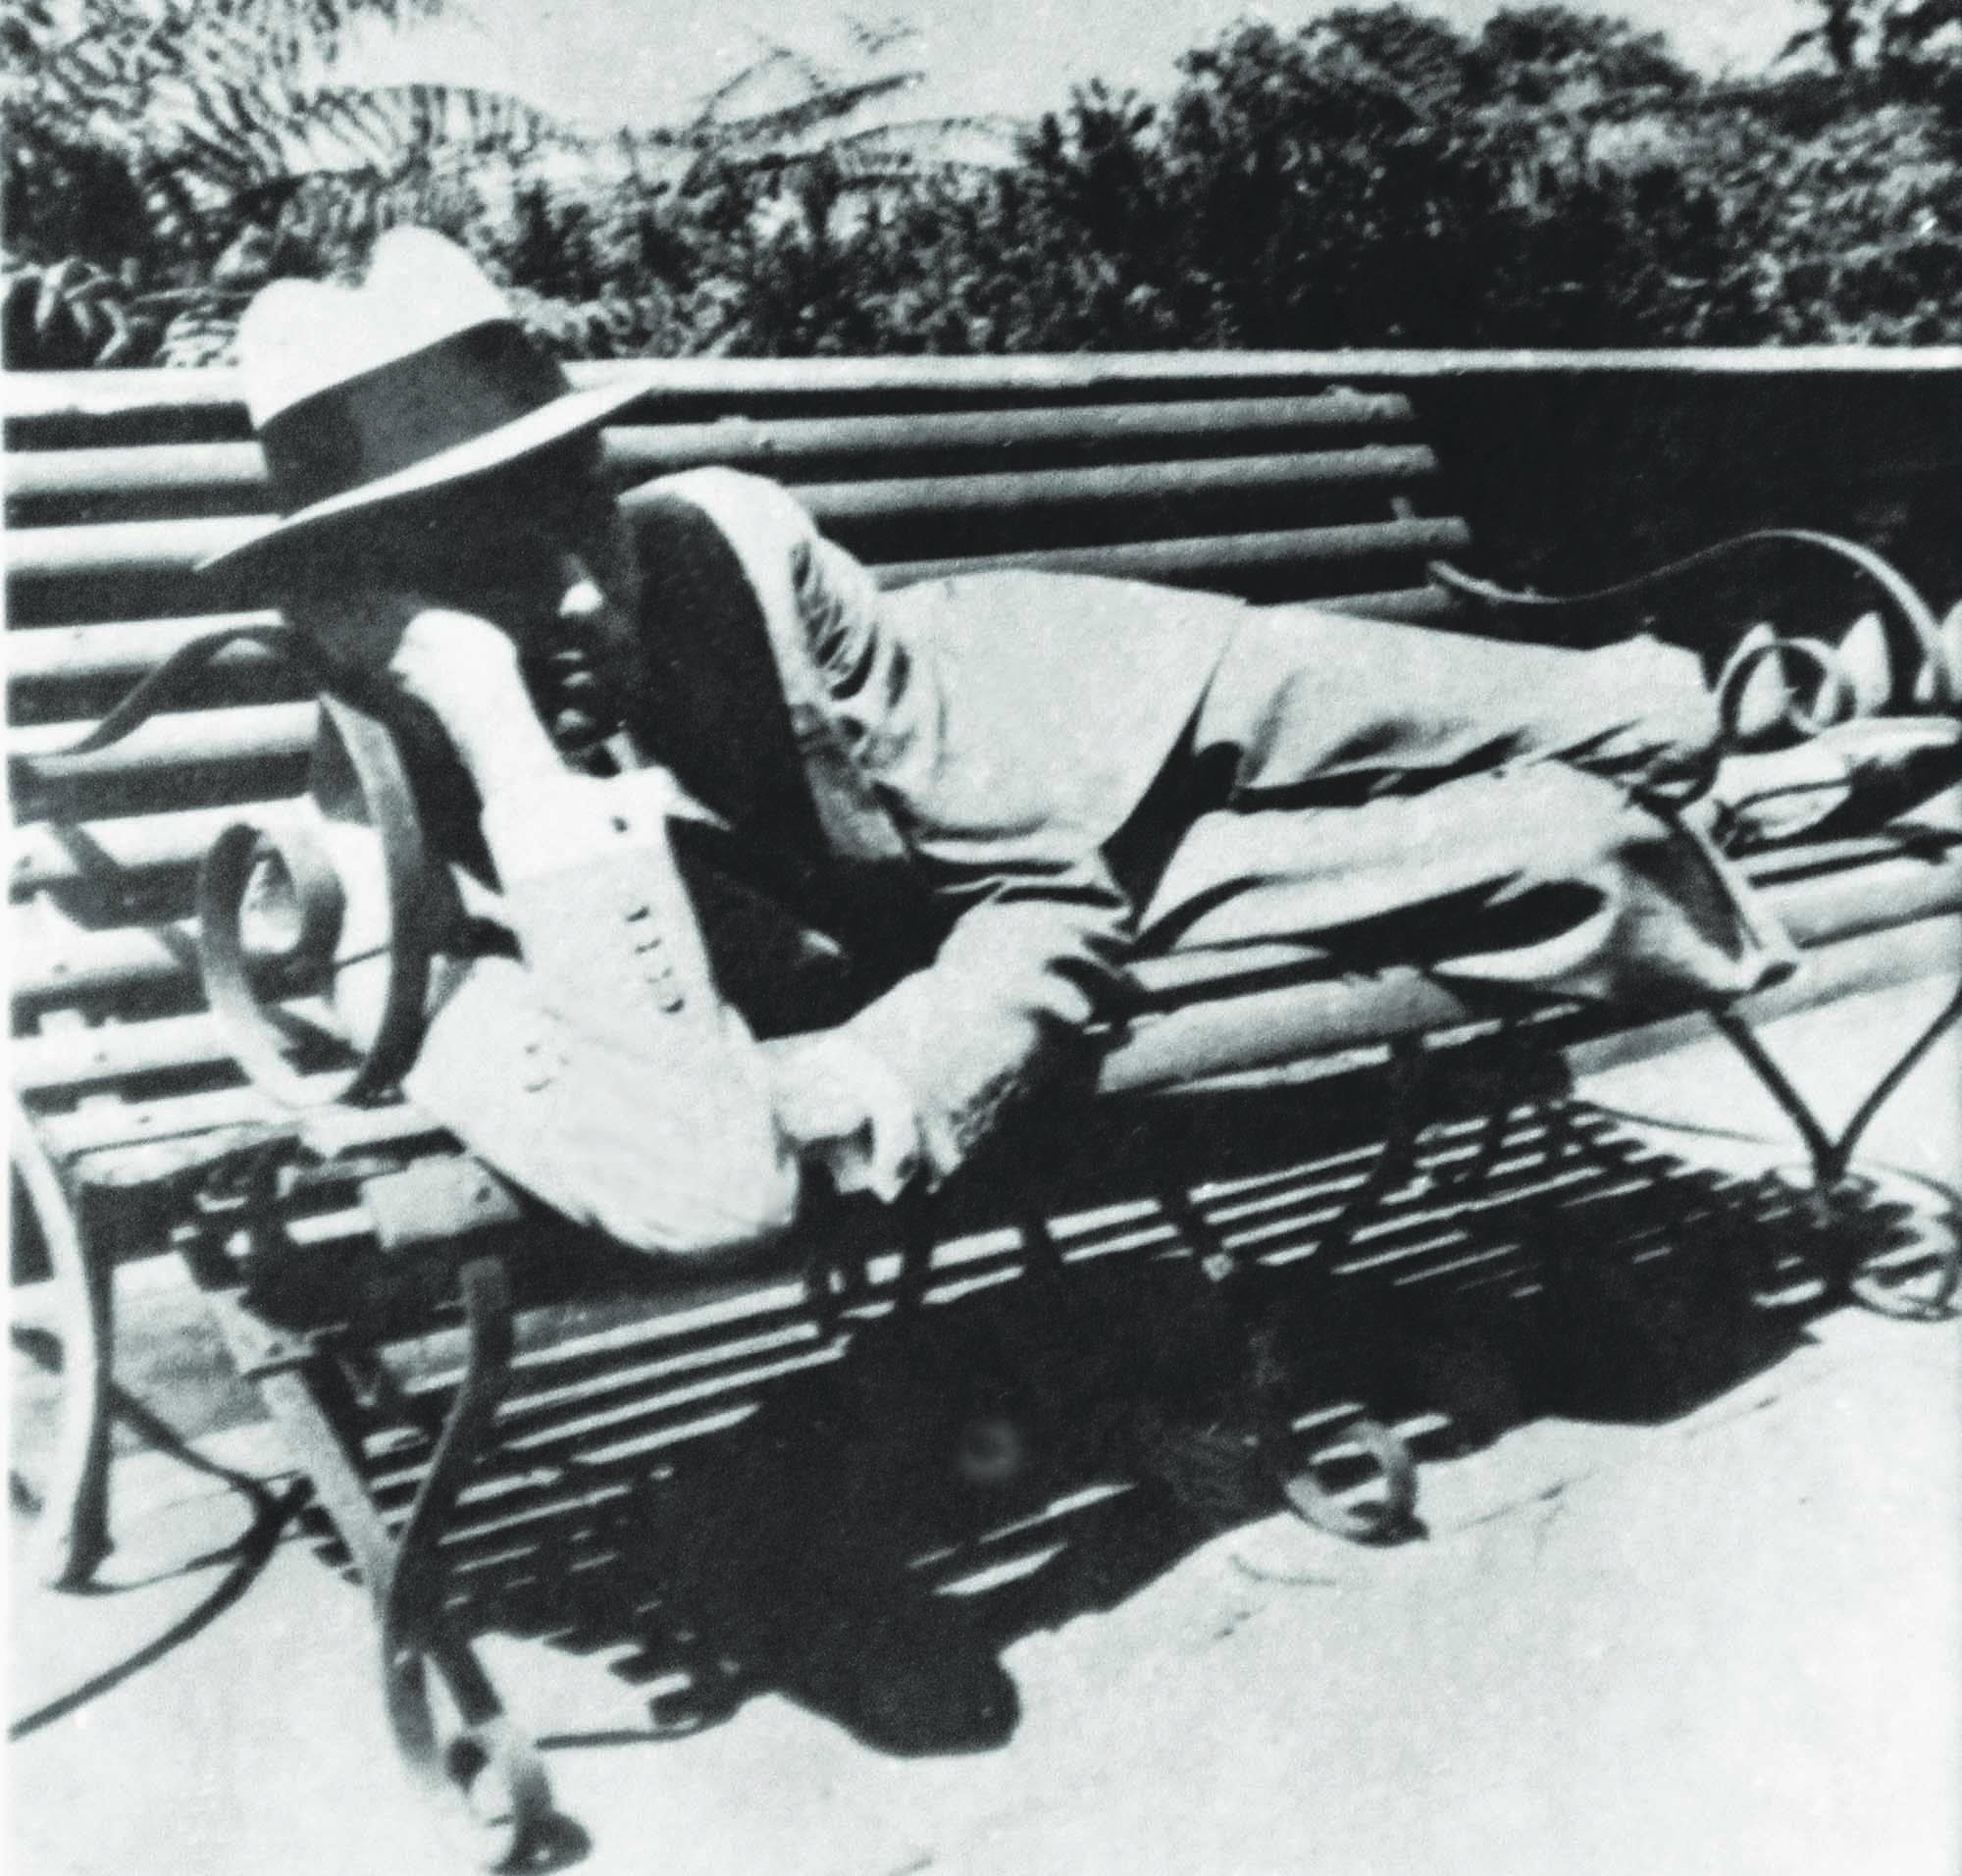 Elegantly dressed in a suit and wearing a hat, Quaid-i-Azam Mohammad Ali Jinnah is seen relaxing on a bench during a visit to Simla. | Photo: PID